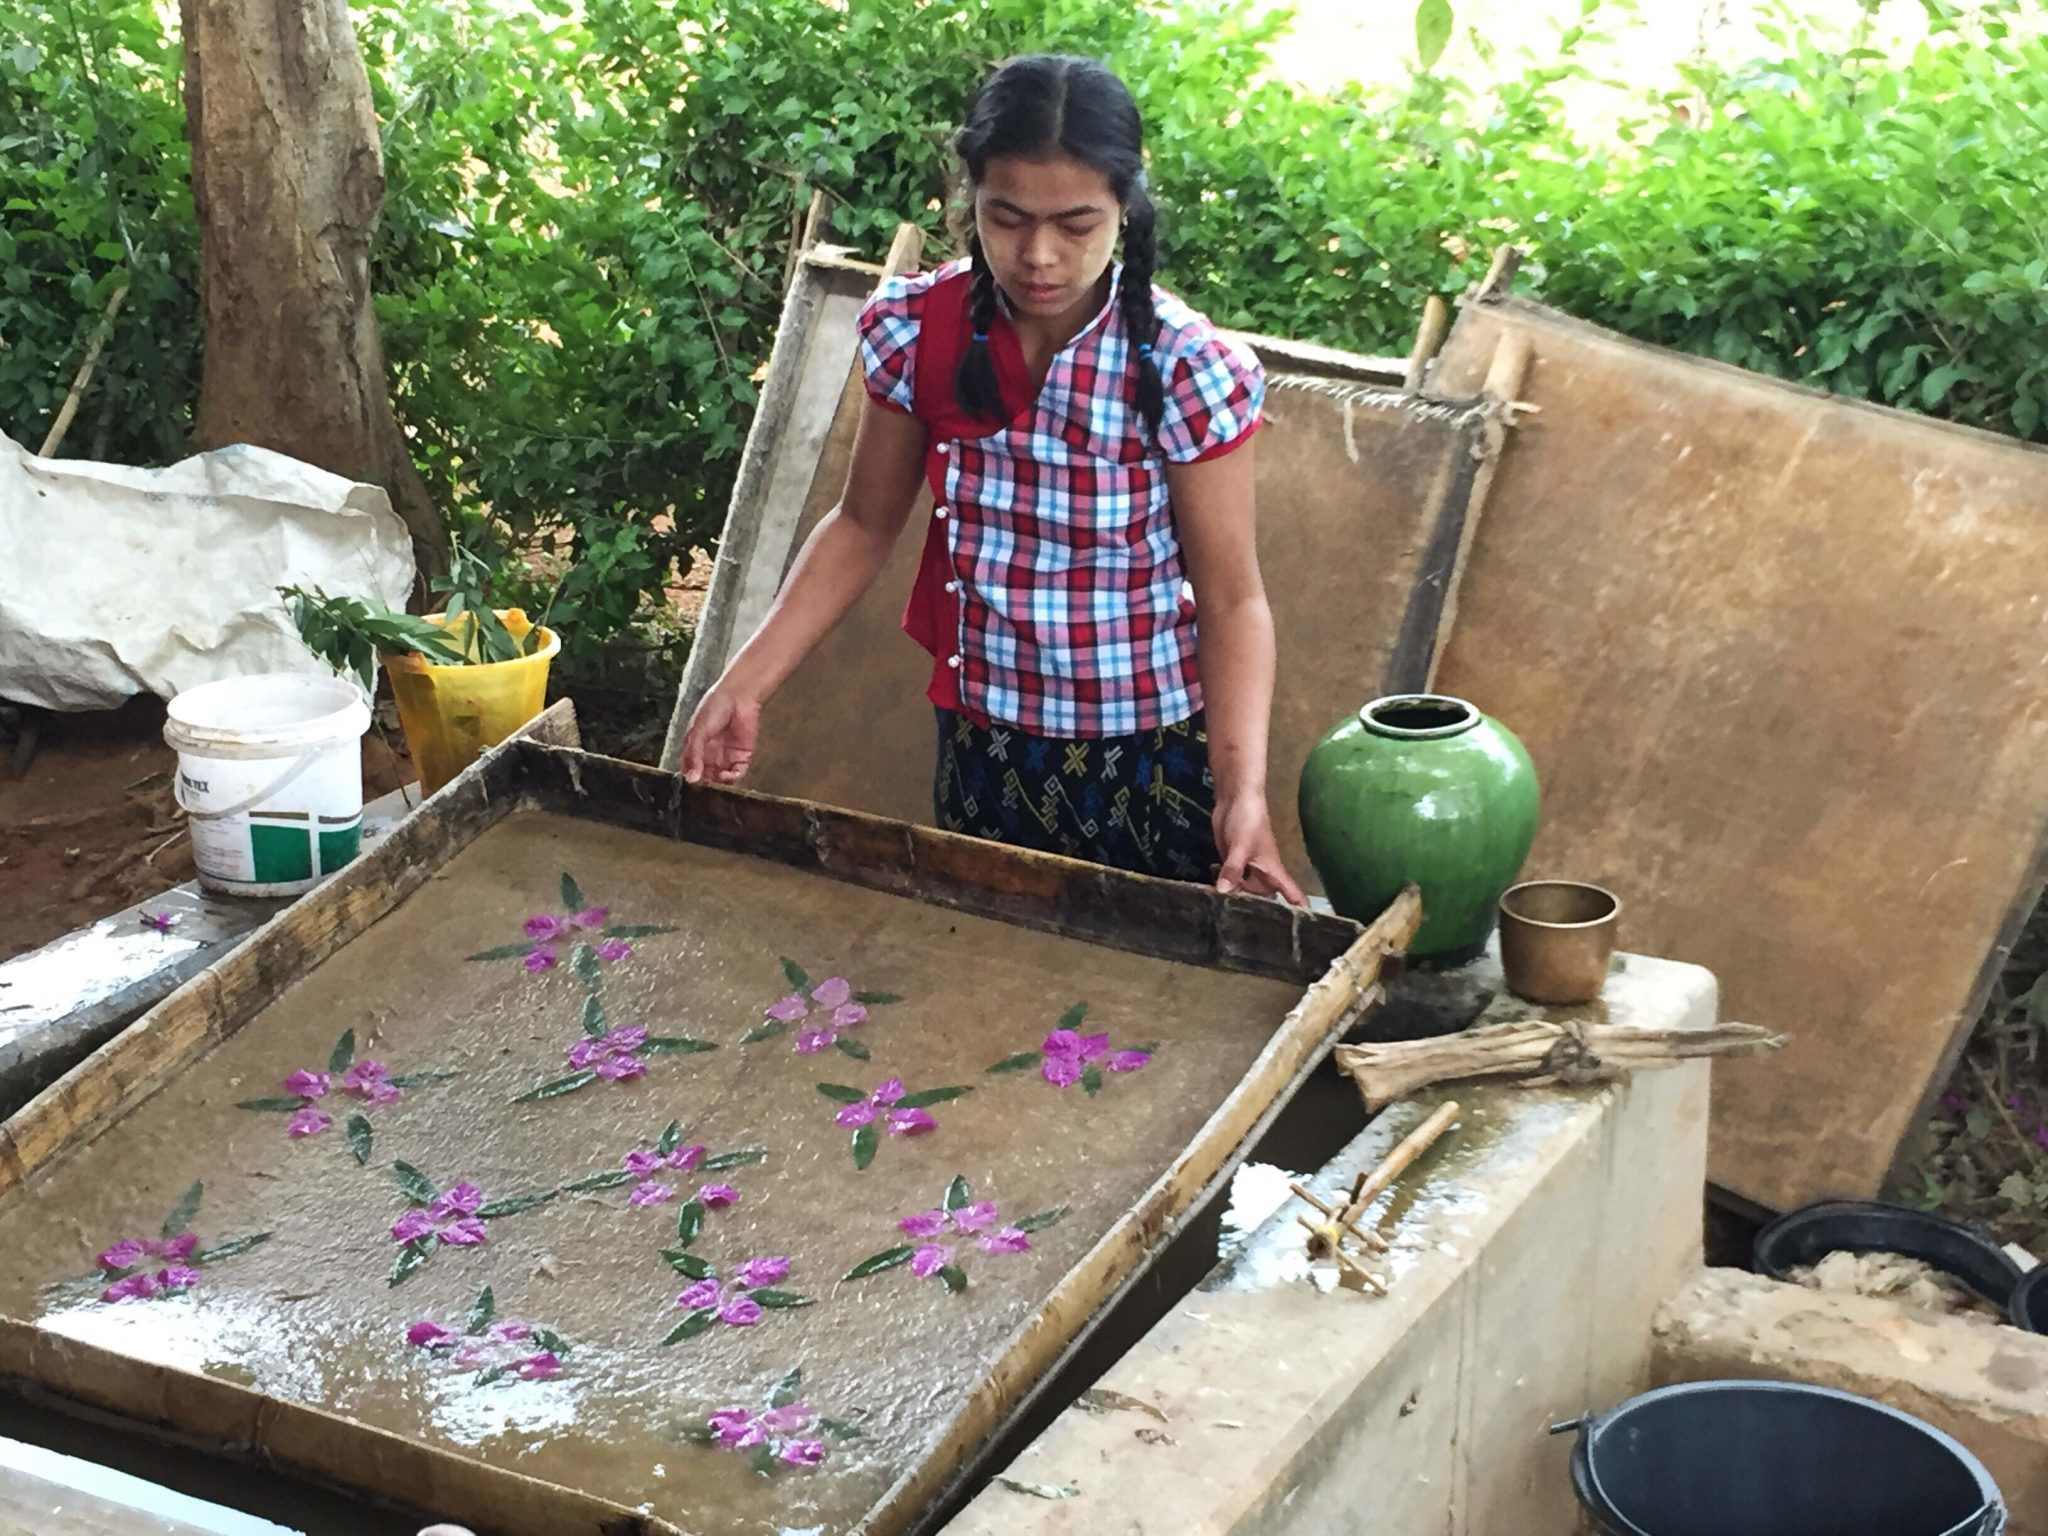 After placing flower petals in the frame that holds the bamboo paper paste, she carefully drains the water through the bamboo. (c) 2015 Gail Jessen